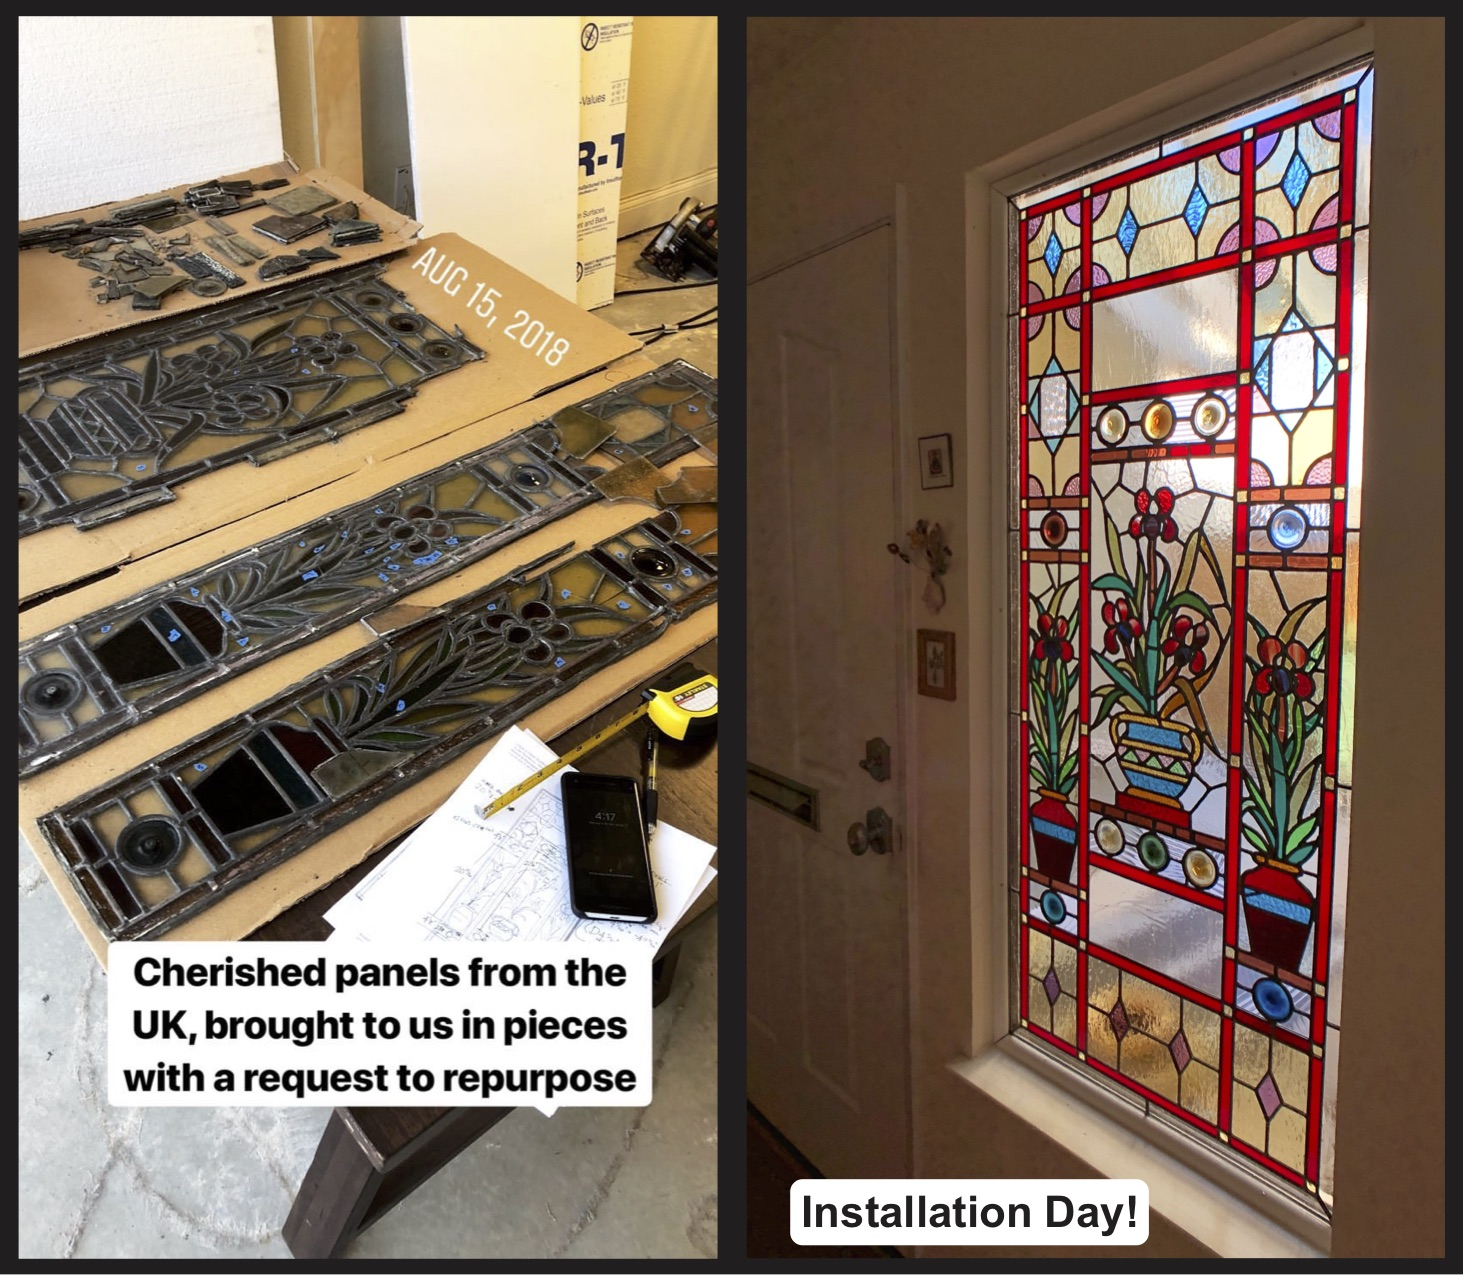 victorian era stained glass restoration british charm rondel floral before and after leaded glass legacy glass studios california front entry sidelight colorful custom glass repair installation.jpg